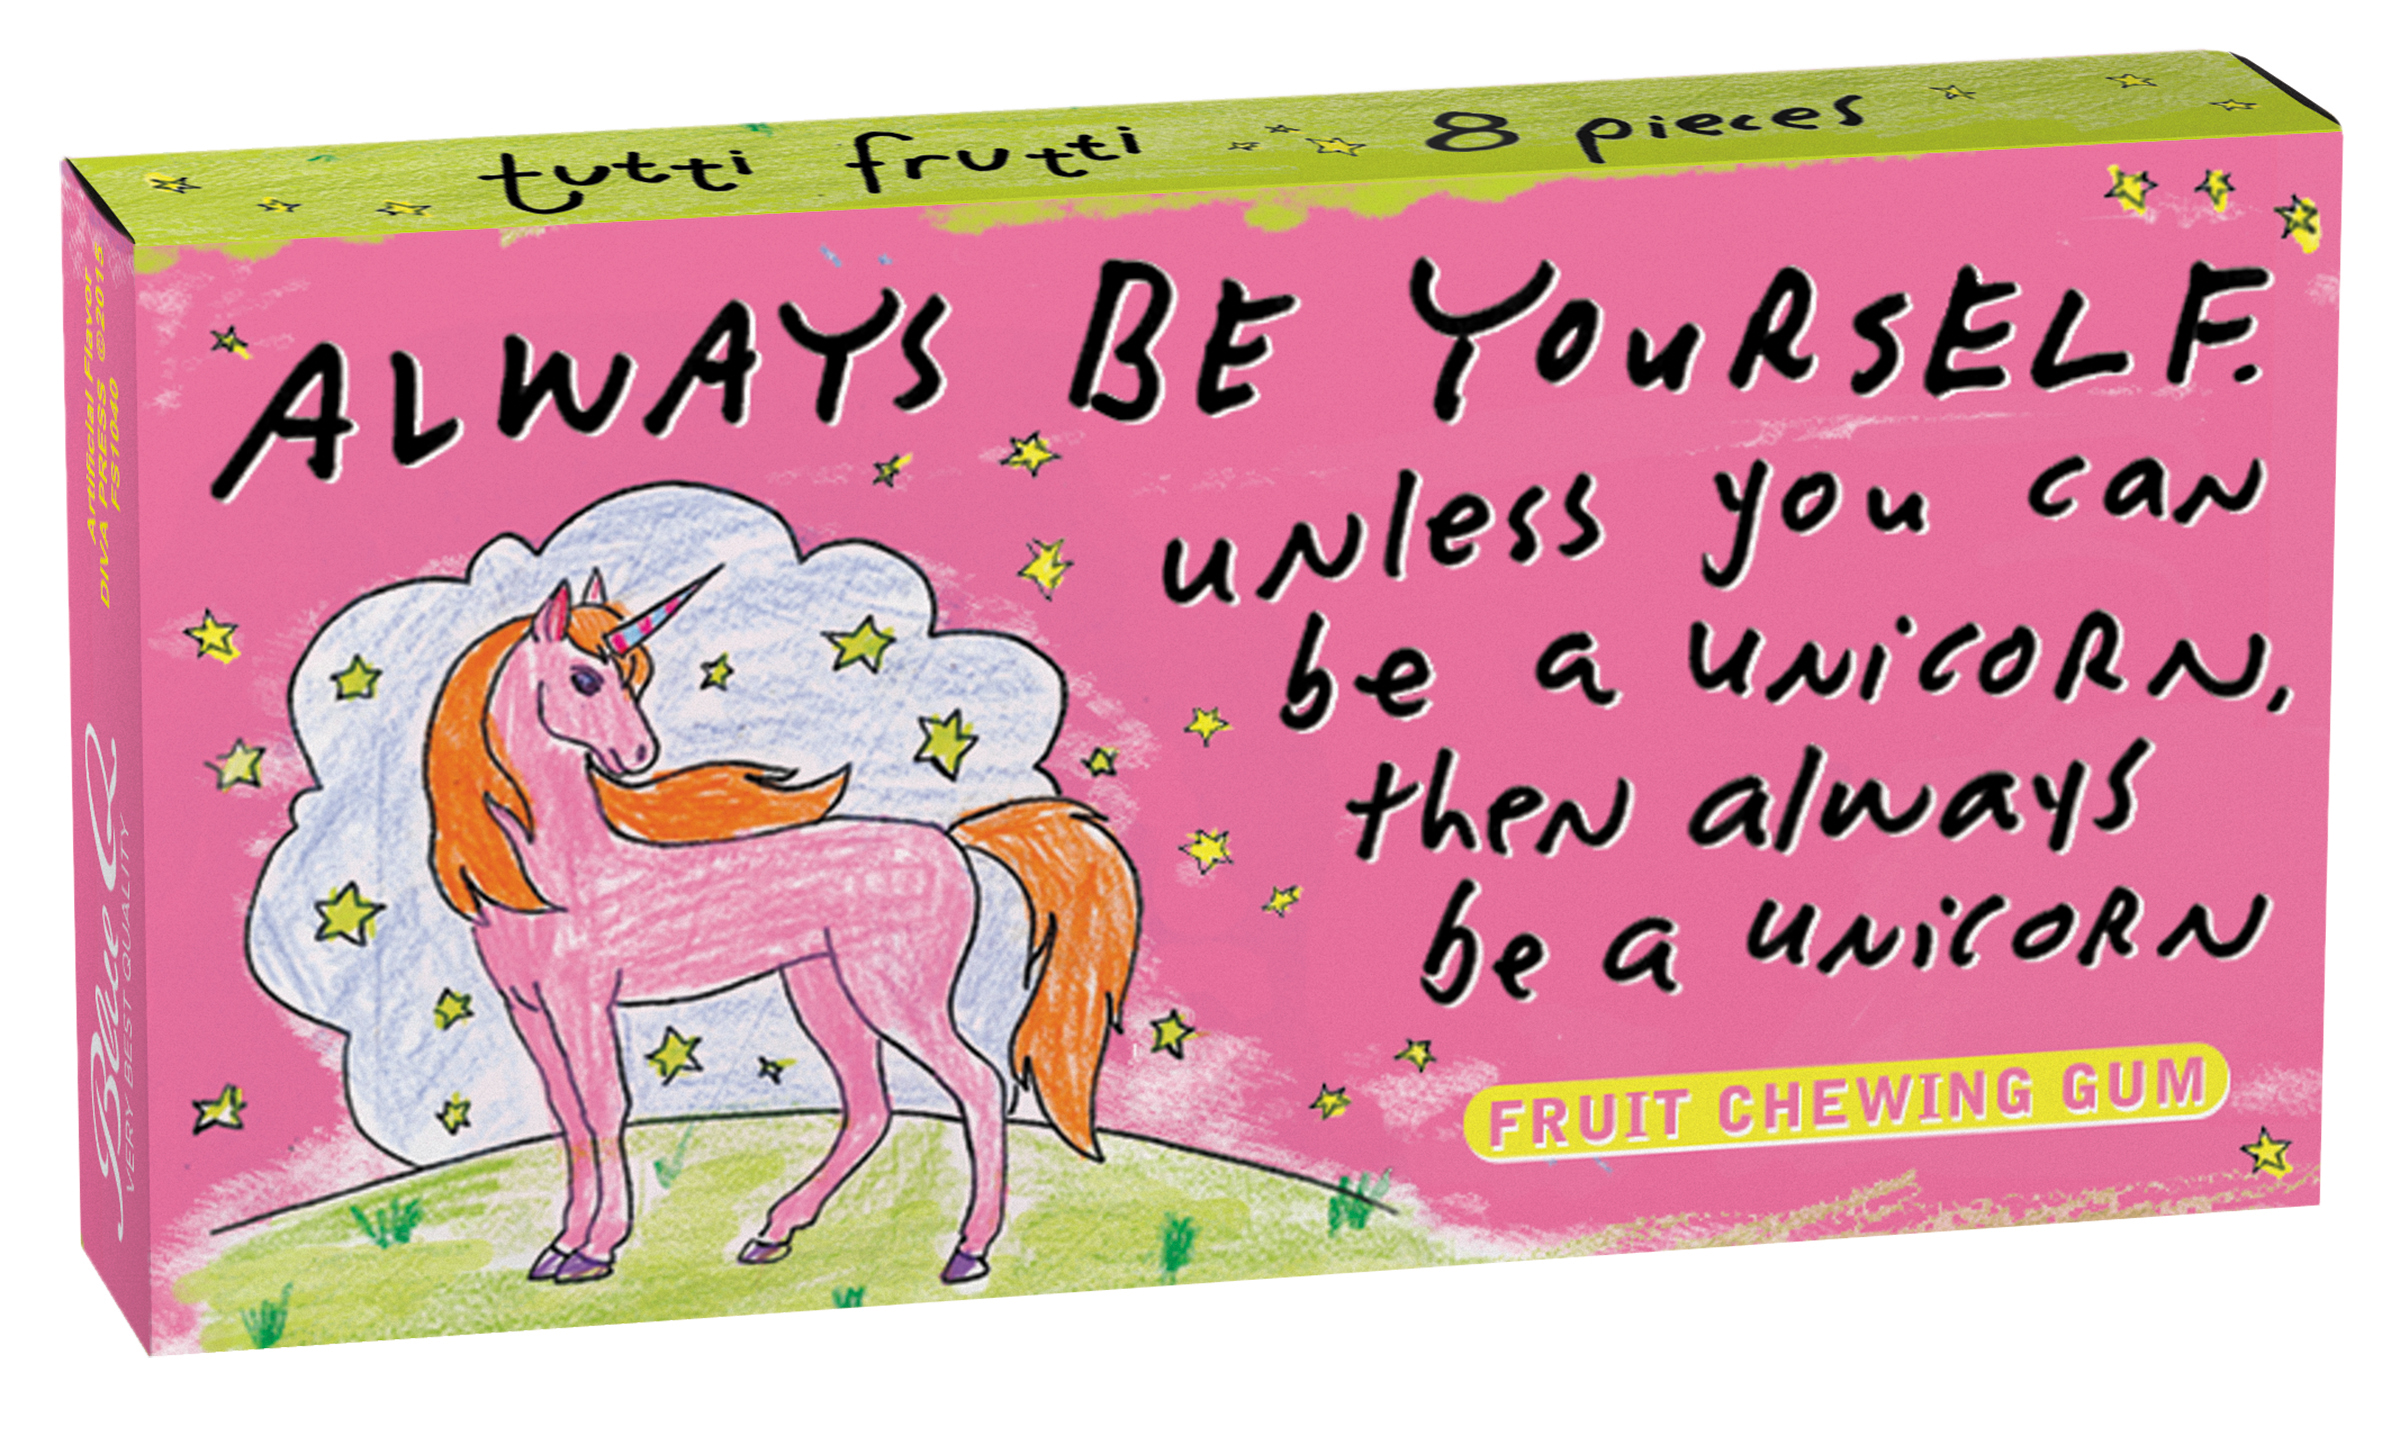 Always be a unicorn Chewing Gums